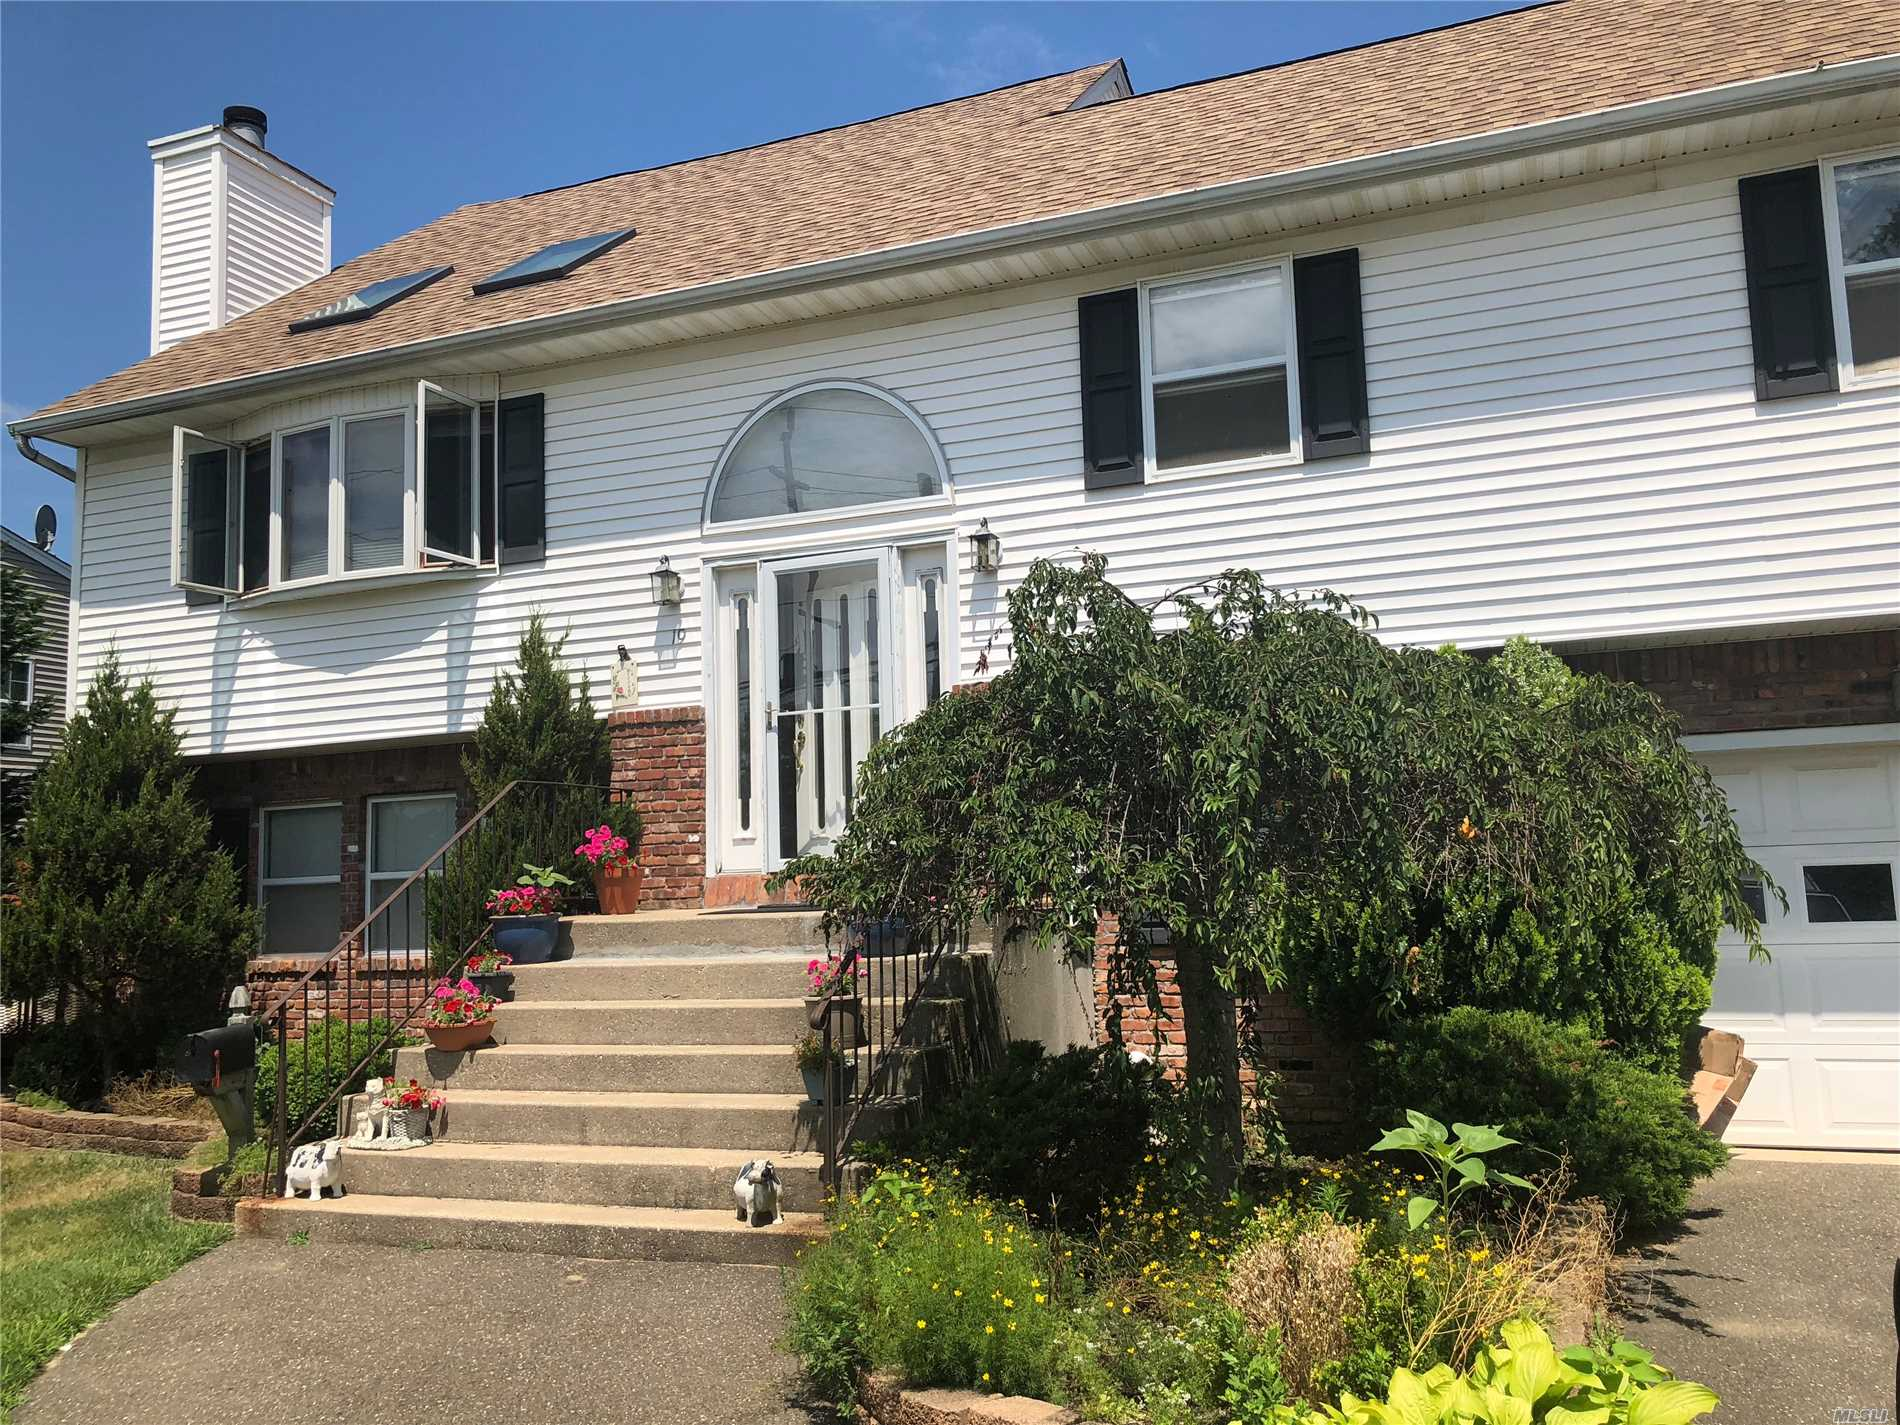 Mint !!! Hi Ranch , Possible Mother/Daughter With Proper Permit, Full Finished Lower Level 2Brm W/Fbth & Ose, Upper Level Lv, Fdr, Eik, 3Brm, Fbth, Master Has Fbth, Huge Family Room, Hardwood Floors, Cathedral Ceilings, 4 Skylights, Fireplace , Cac, Wood Deck Off The Kit. Ing Sprinks, Central Vacuum, Huge Backyard For Entertaining, Turn Key , Ready To Move In !!!